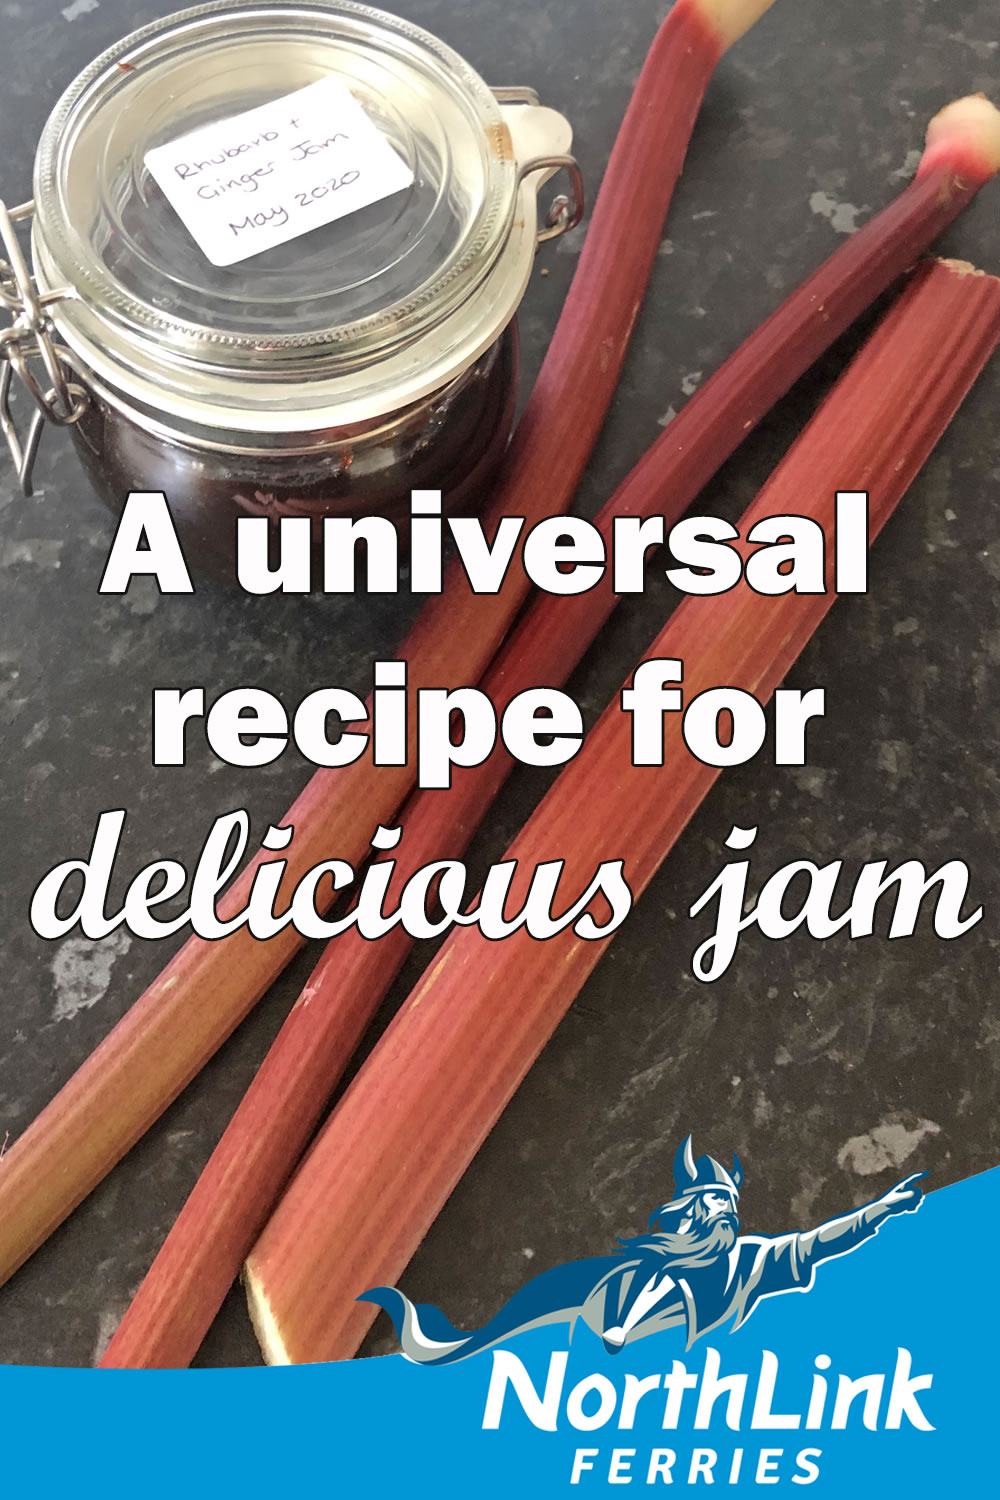 A universal recipe for delicious jam